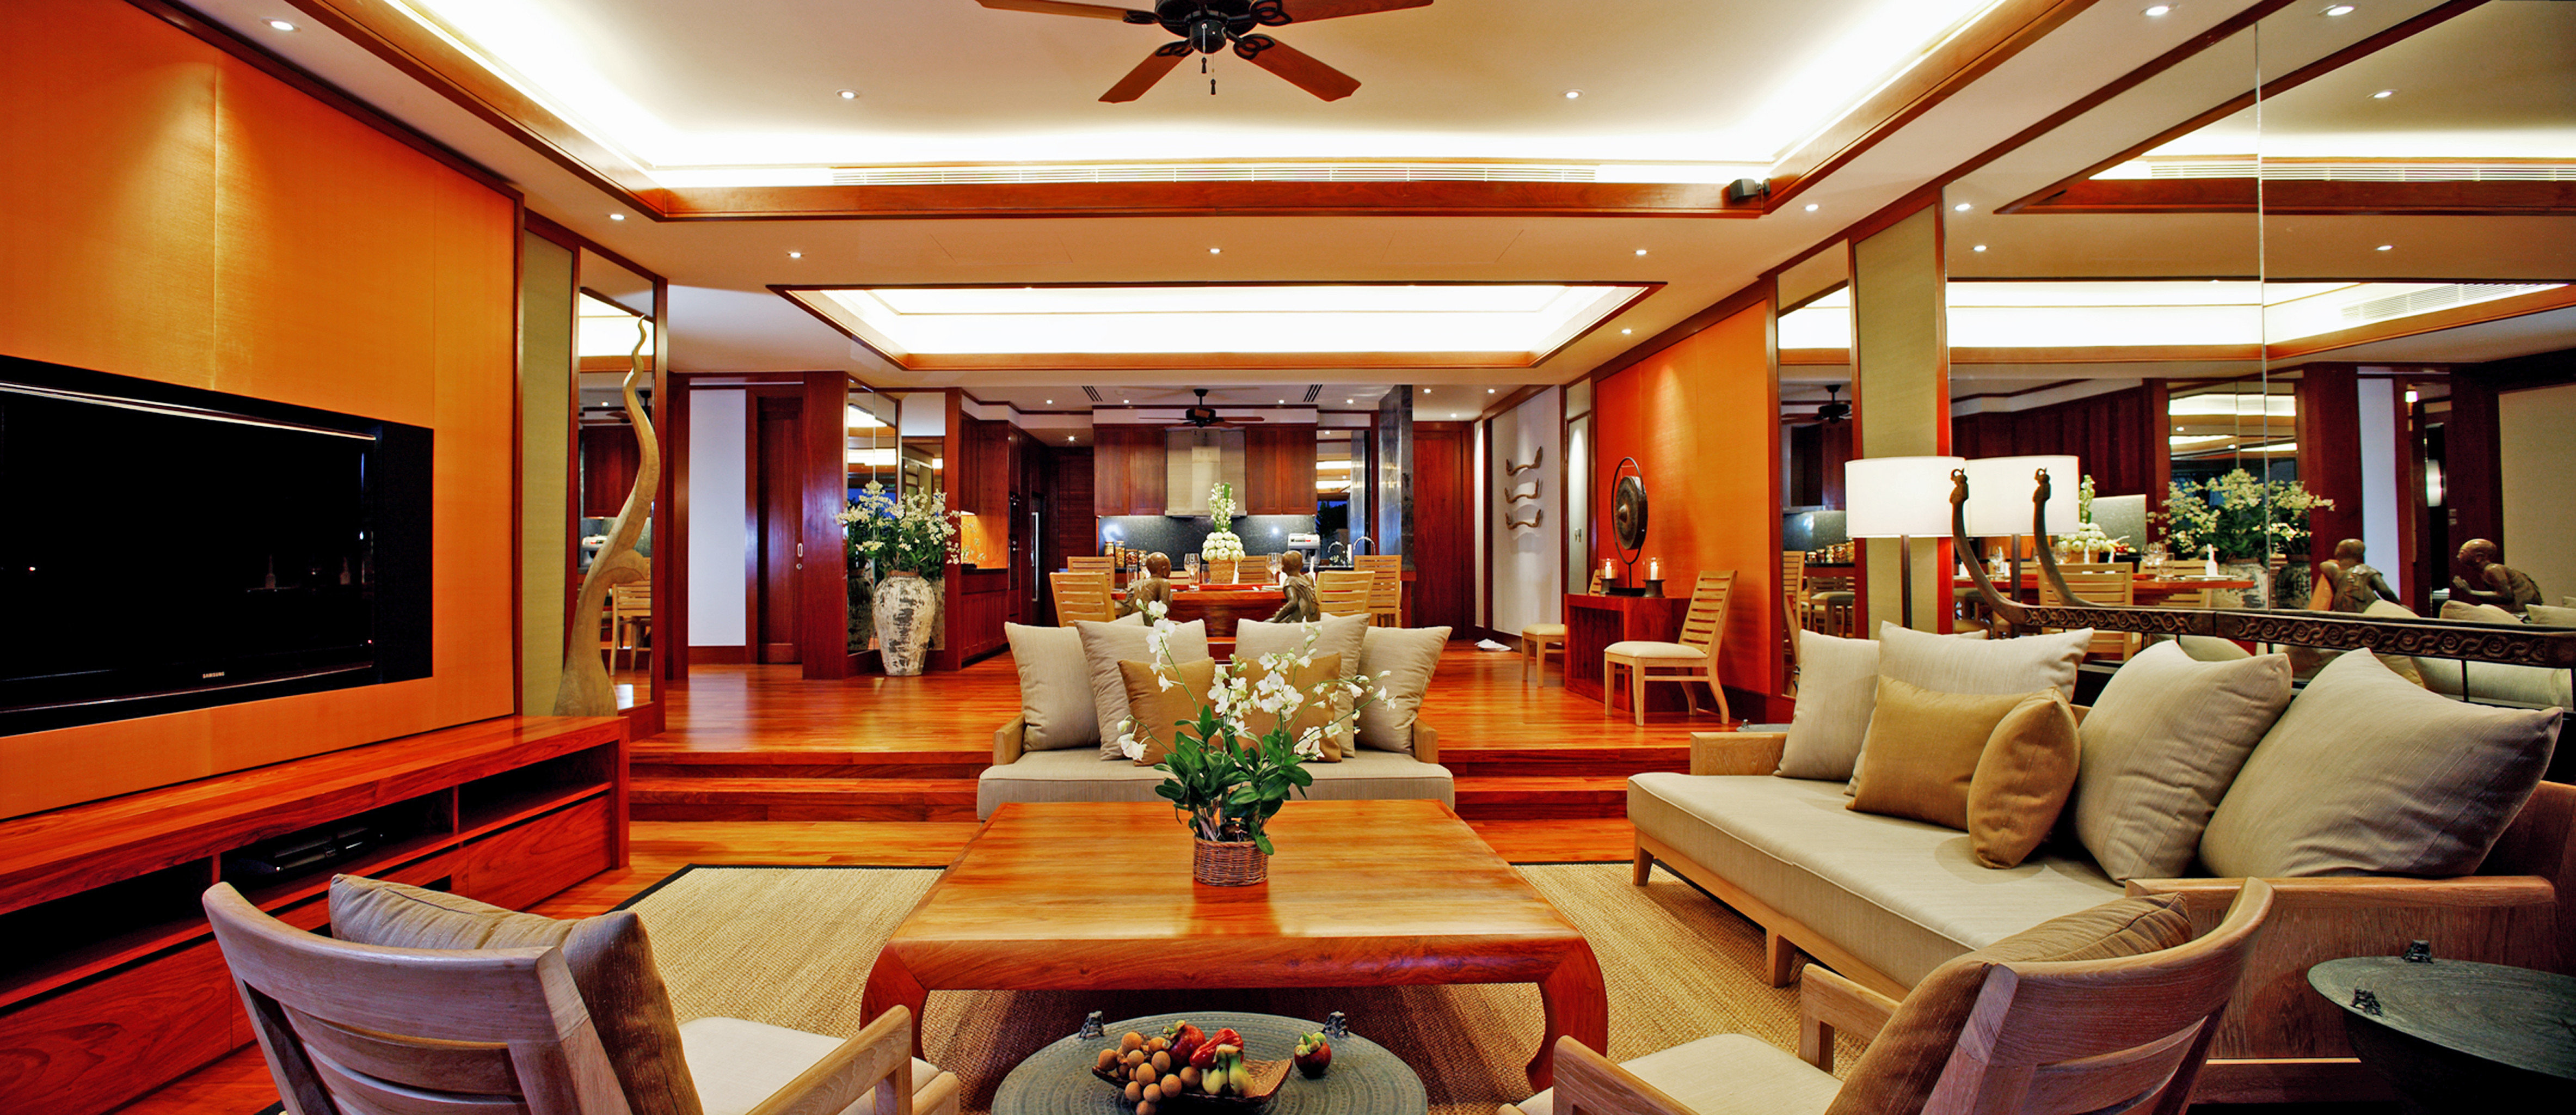 Lobby Lounge sofa recreation room living room vehicle Resort Suite yacht Boat billiard room mansion Modern